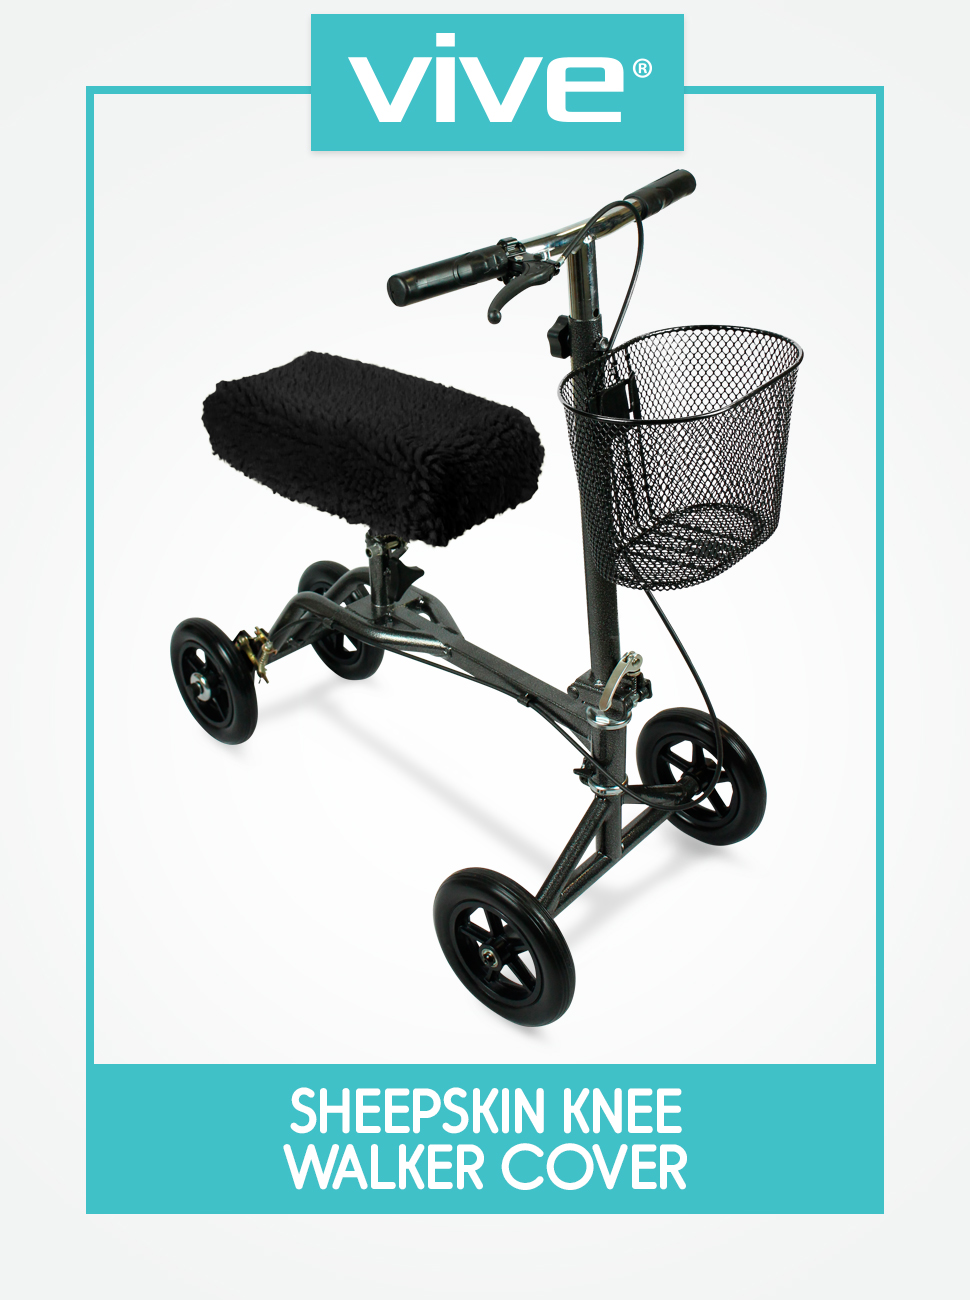 Knee Walker Pad Cover - Plush Synthetic Faux Sheepskin Scooter Cushion - Accessory for Knee roller